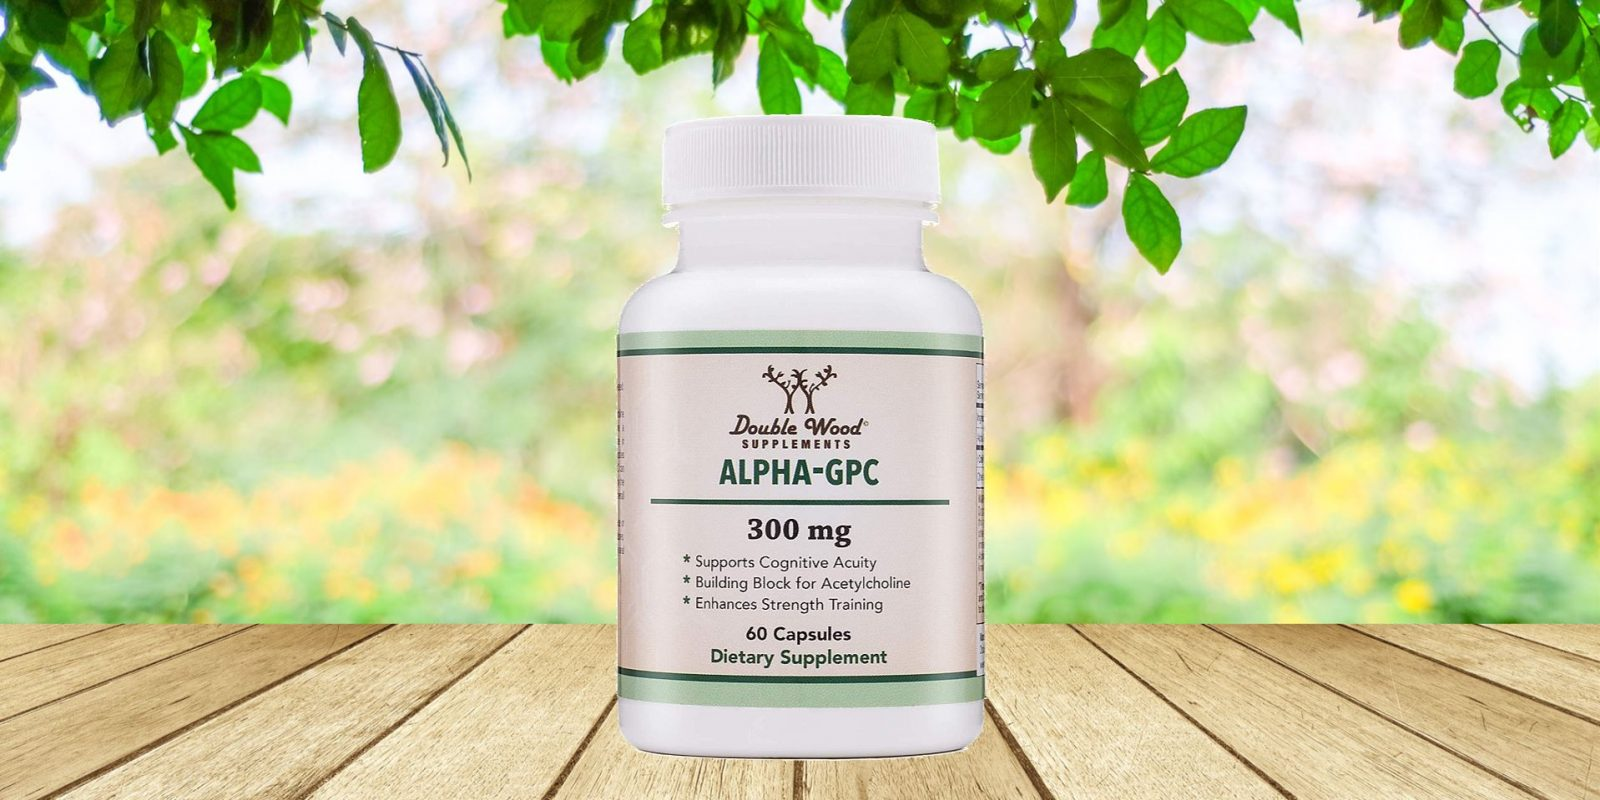 Double Wood Alpha-GPC Choline Supplement